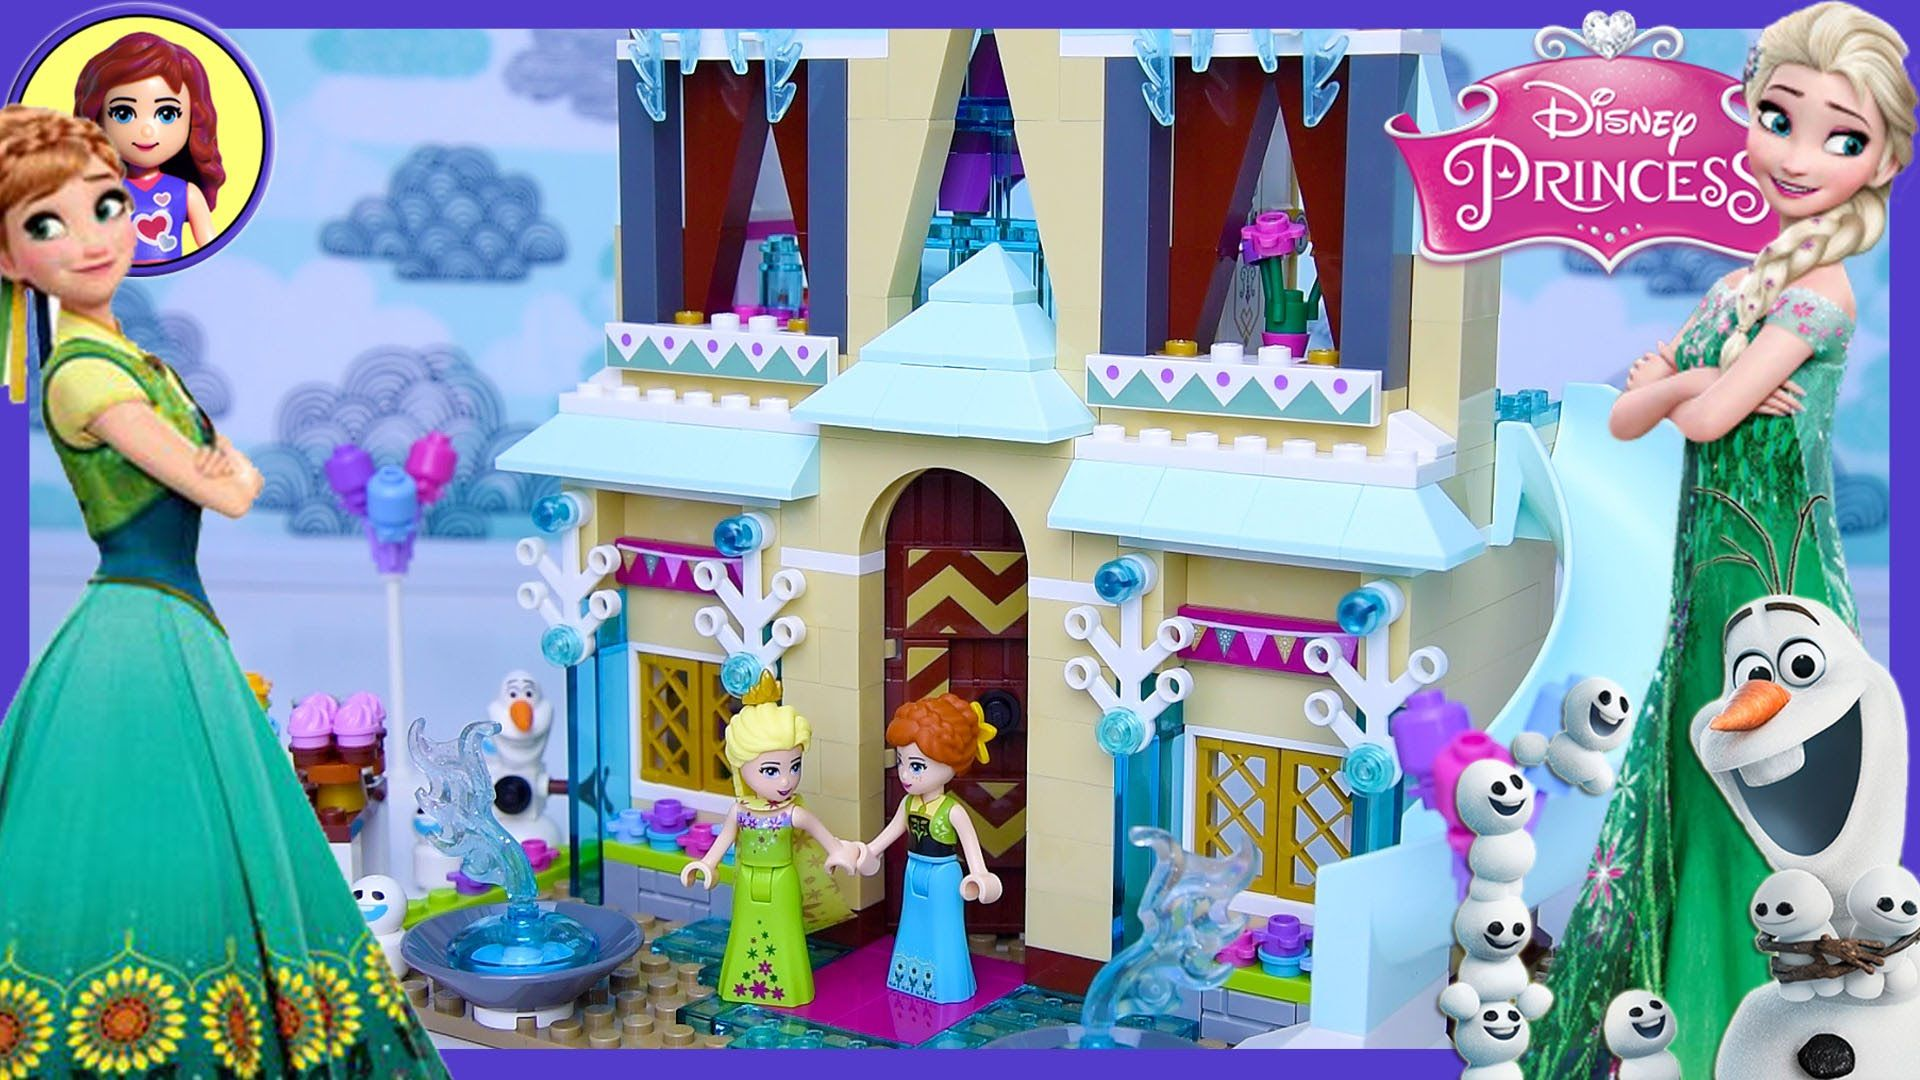 Lego Frozen Fever Arendelle Celebration Castle Disney Princess Build Review Play Kids Toys Frozen Legos Lego Disney Princess Lego Girls